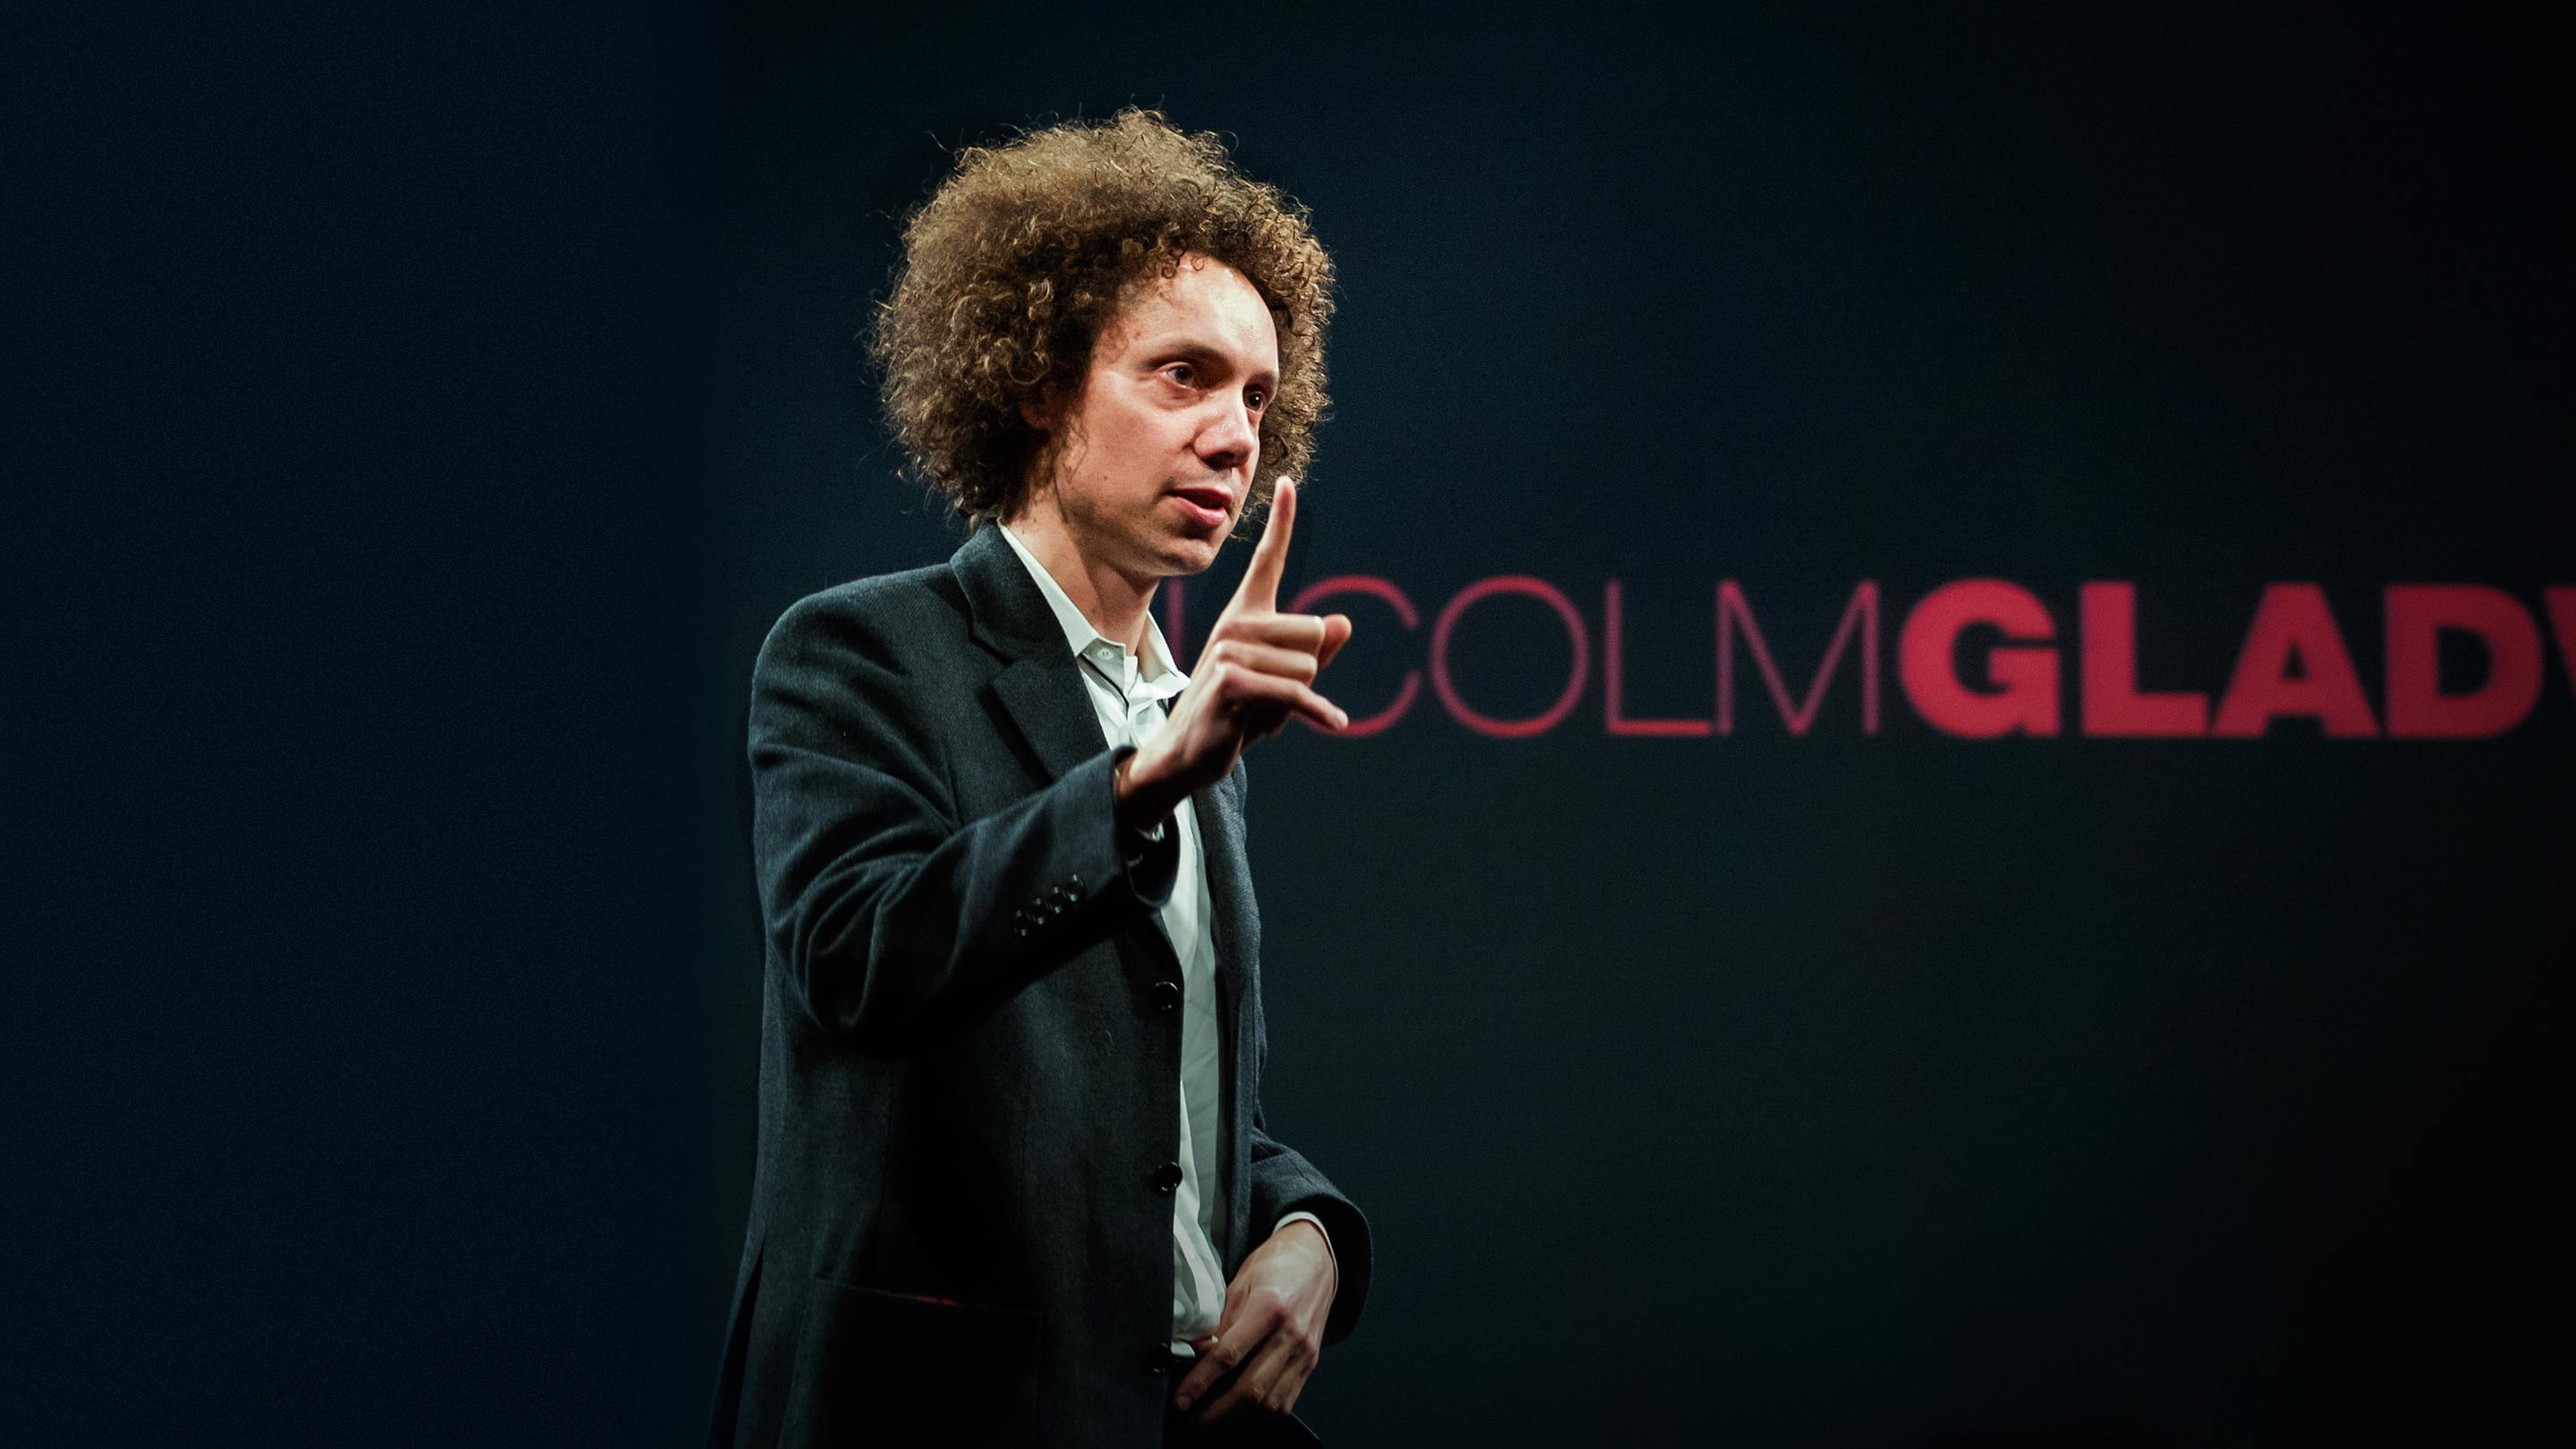 Where all those choices got started… according to Malcolm Gladwell